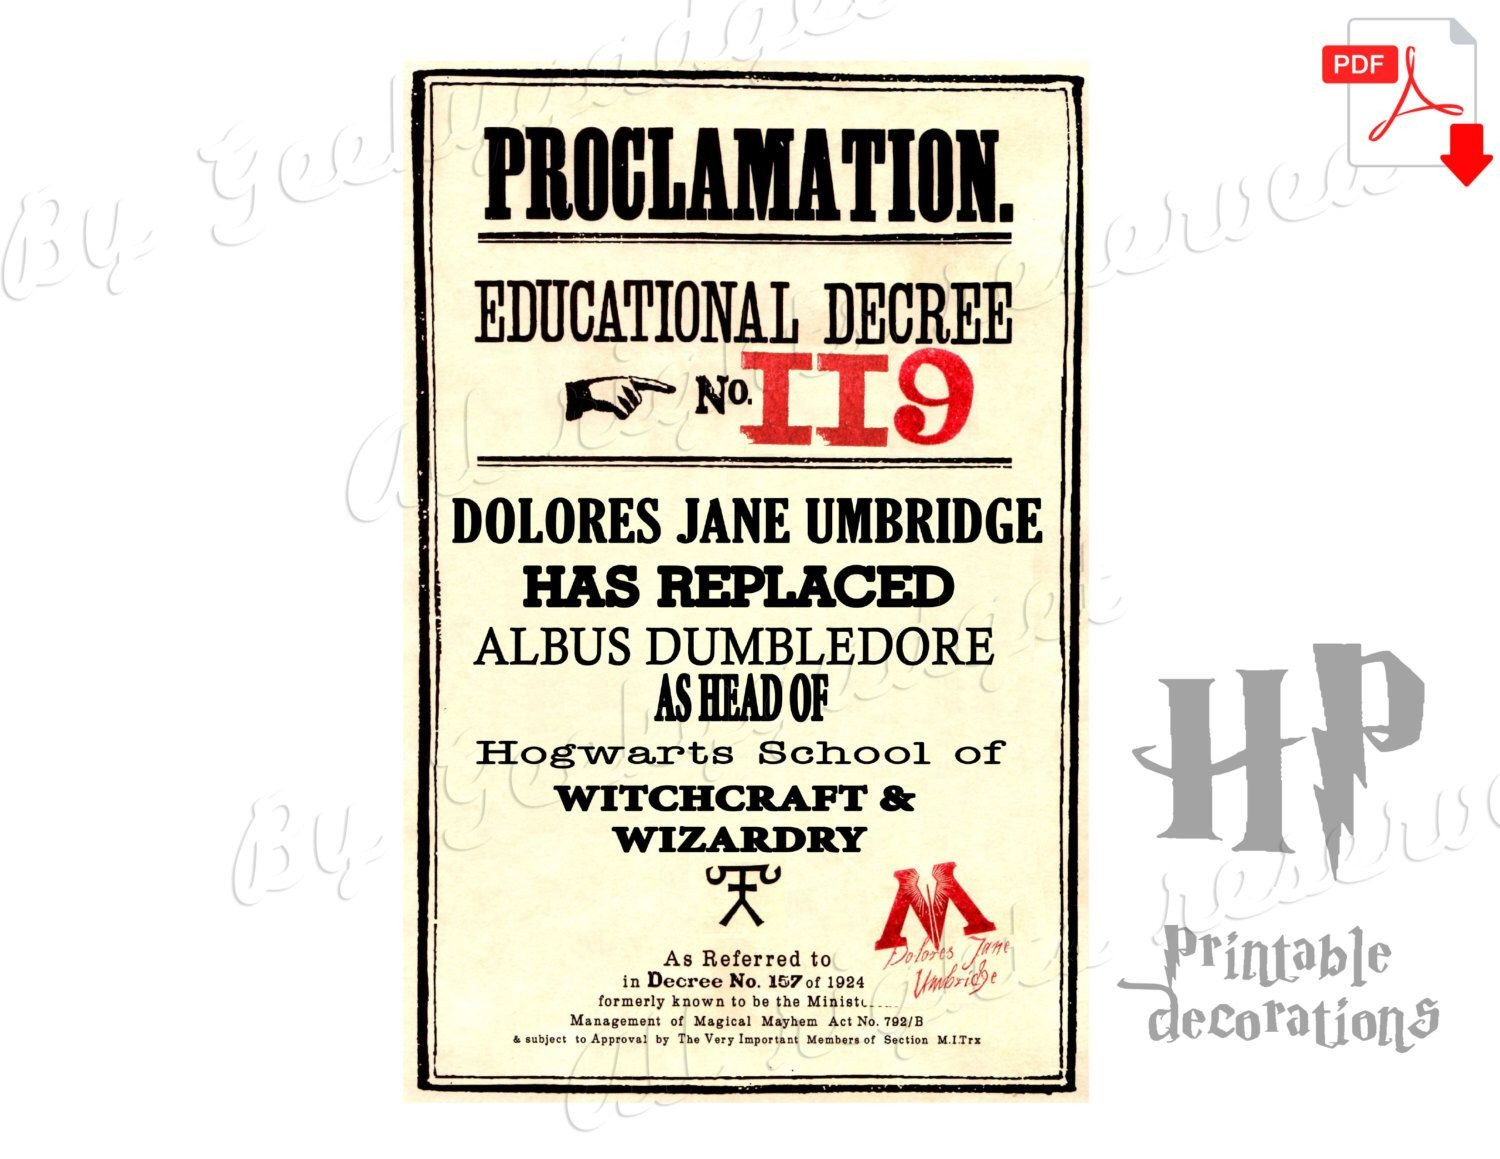 Harry Potter Proclamation Template New Headmaster Educational Decree 119 Dolores Umbridge